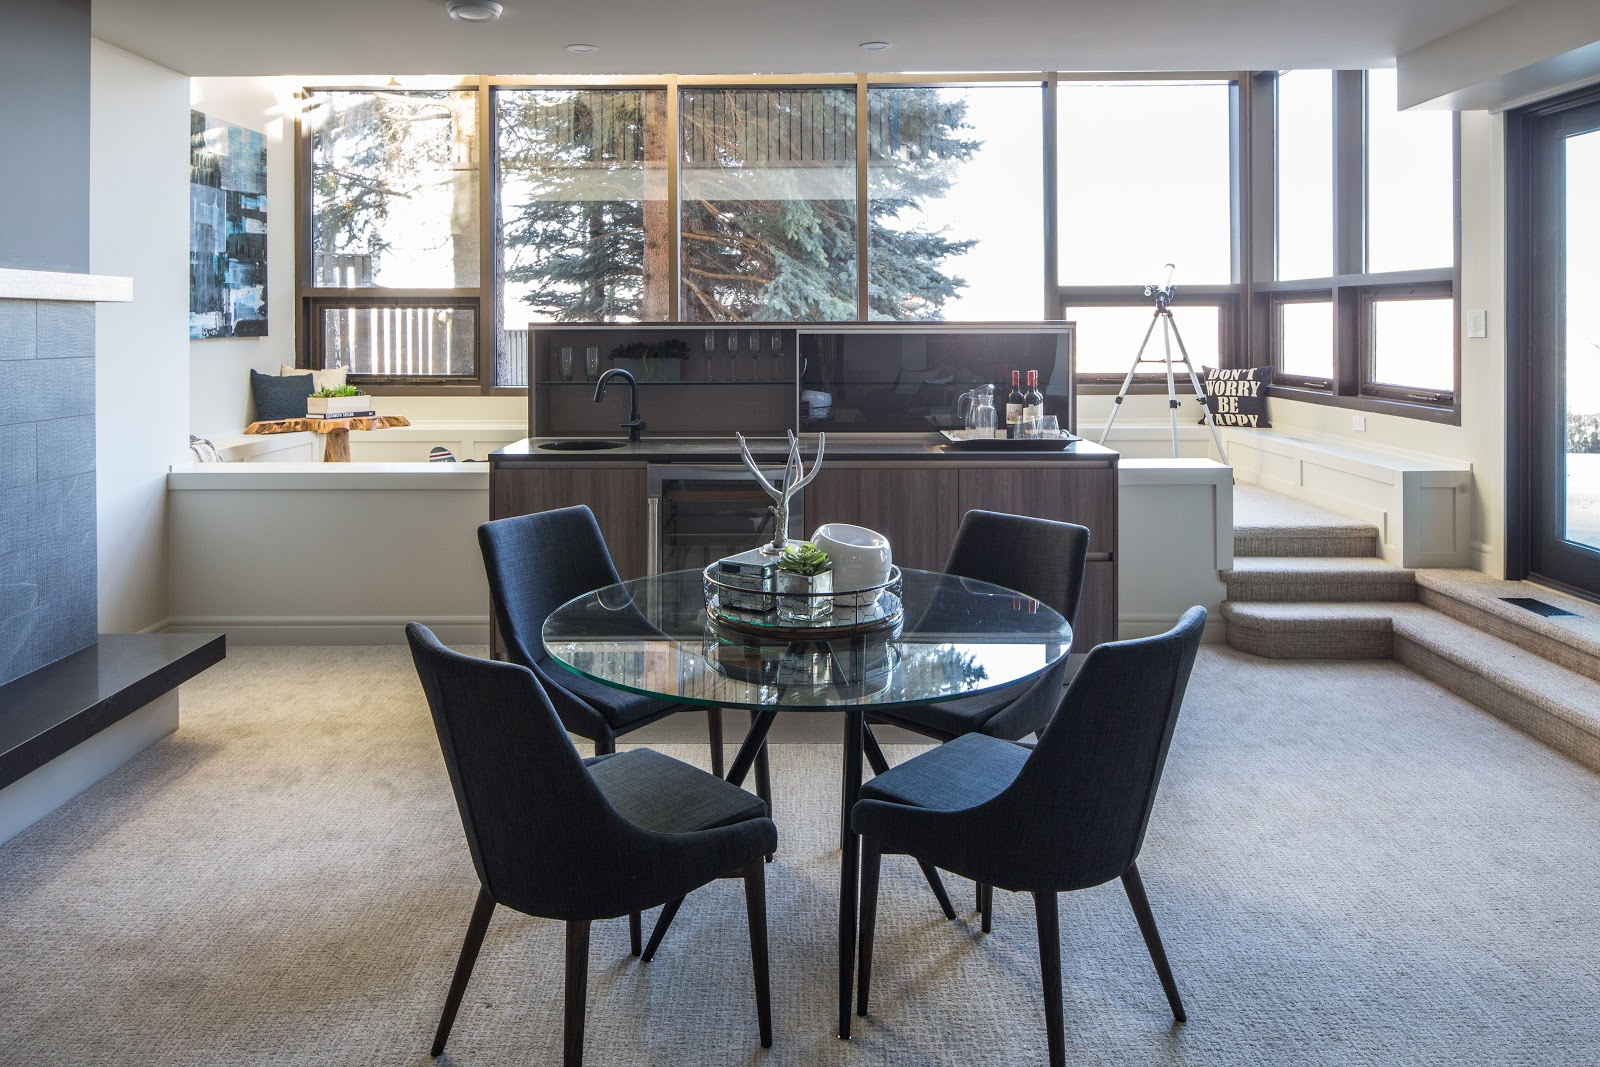 NW Calgary interior design basement family room dining area wet bar entertainment space